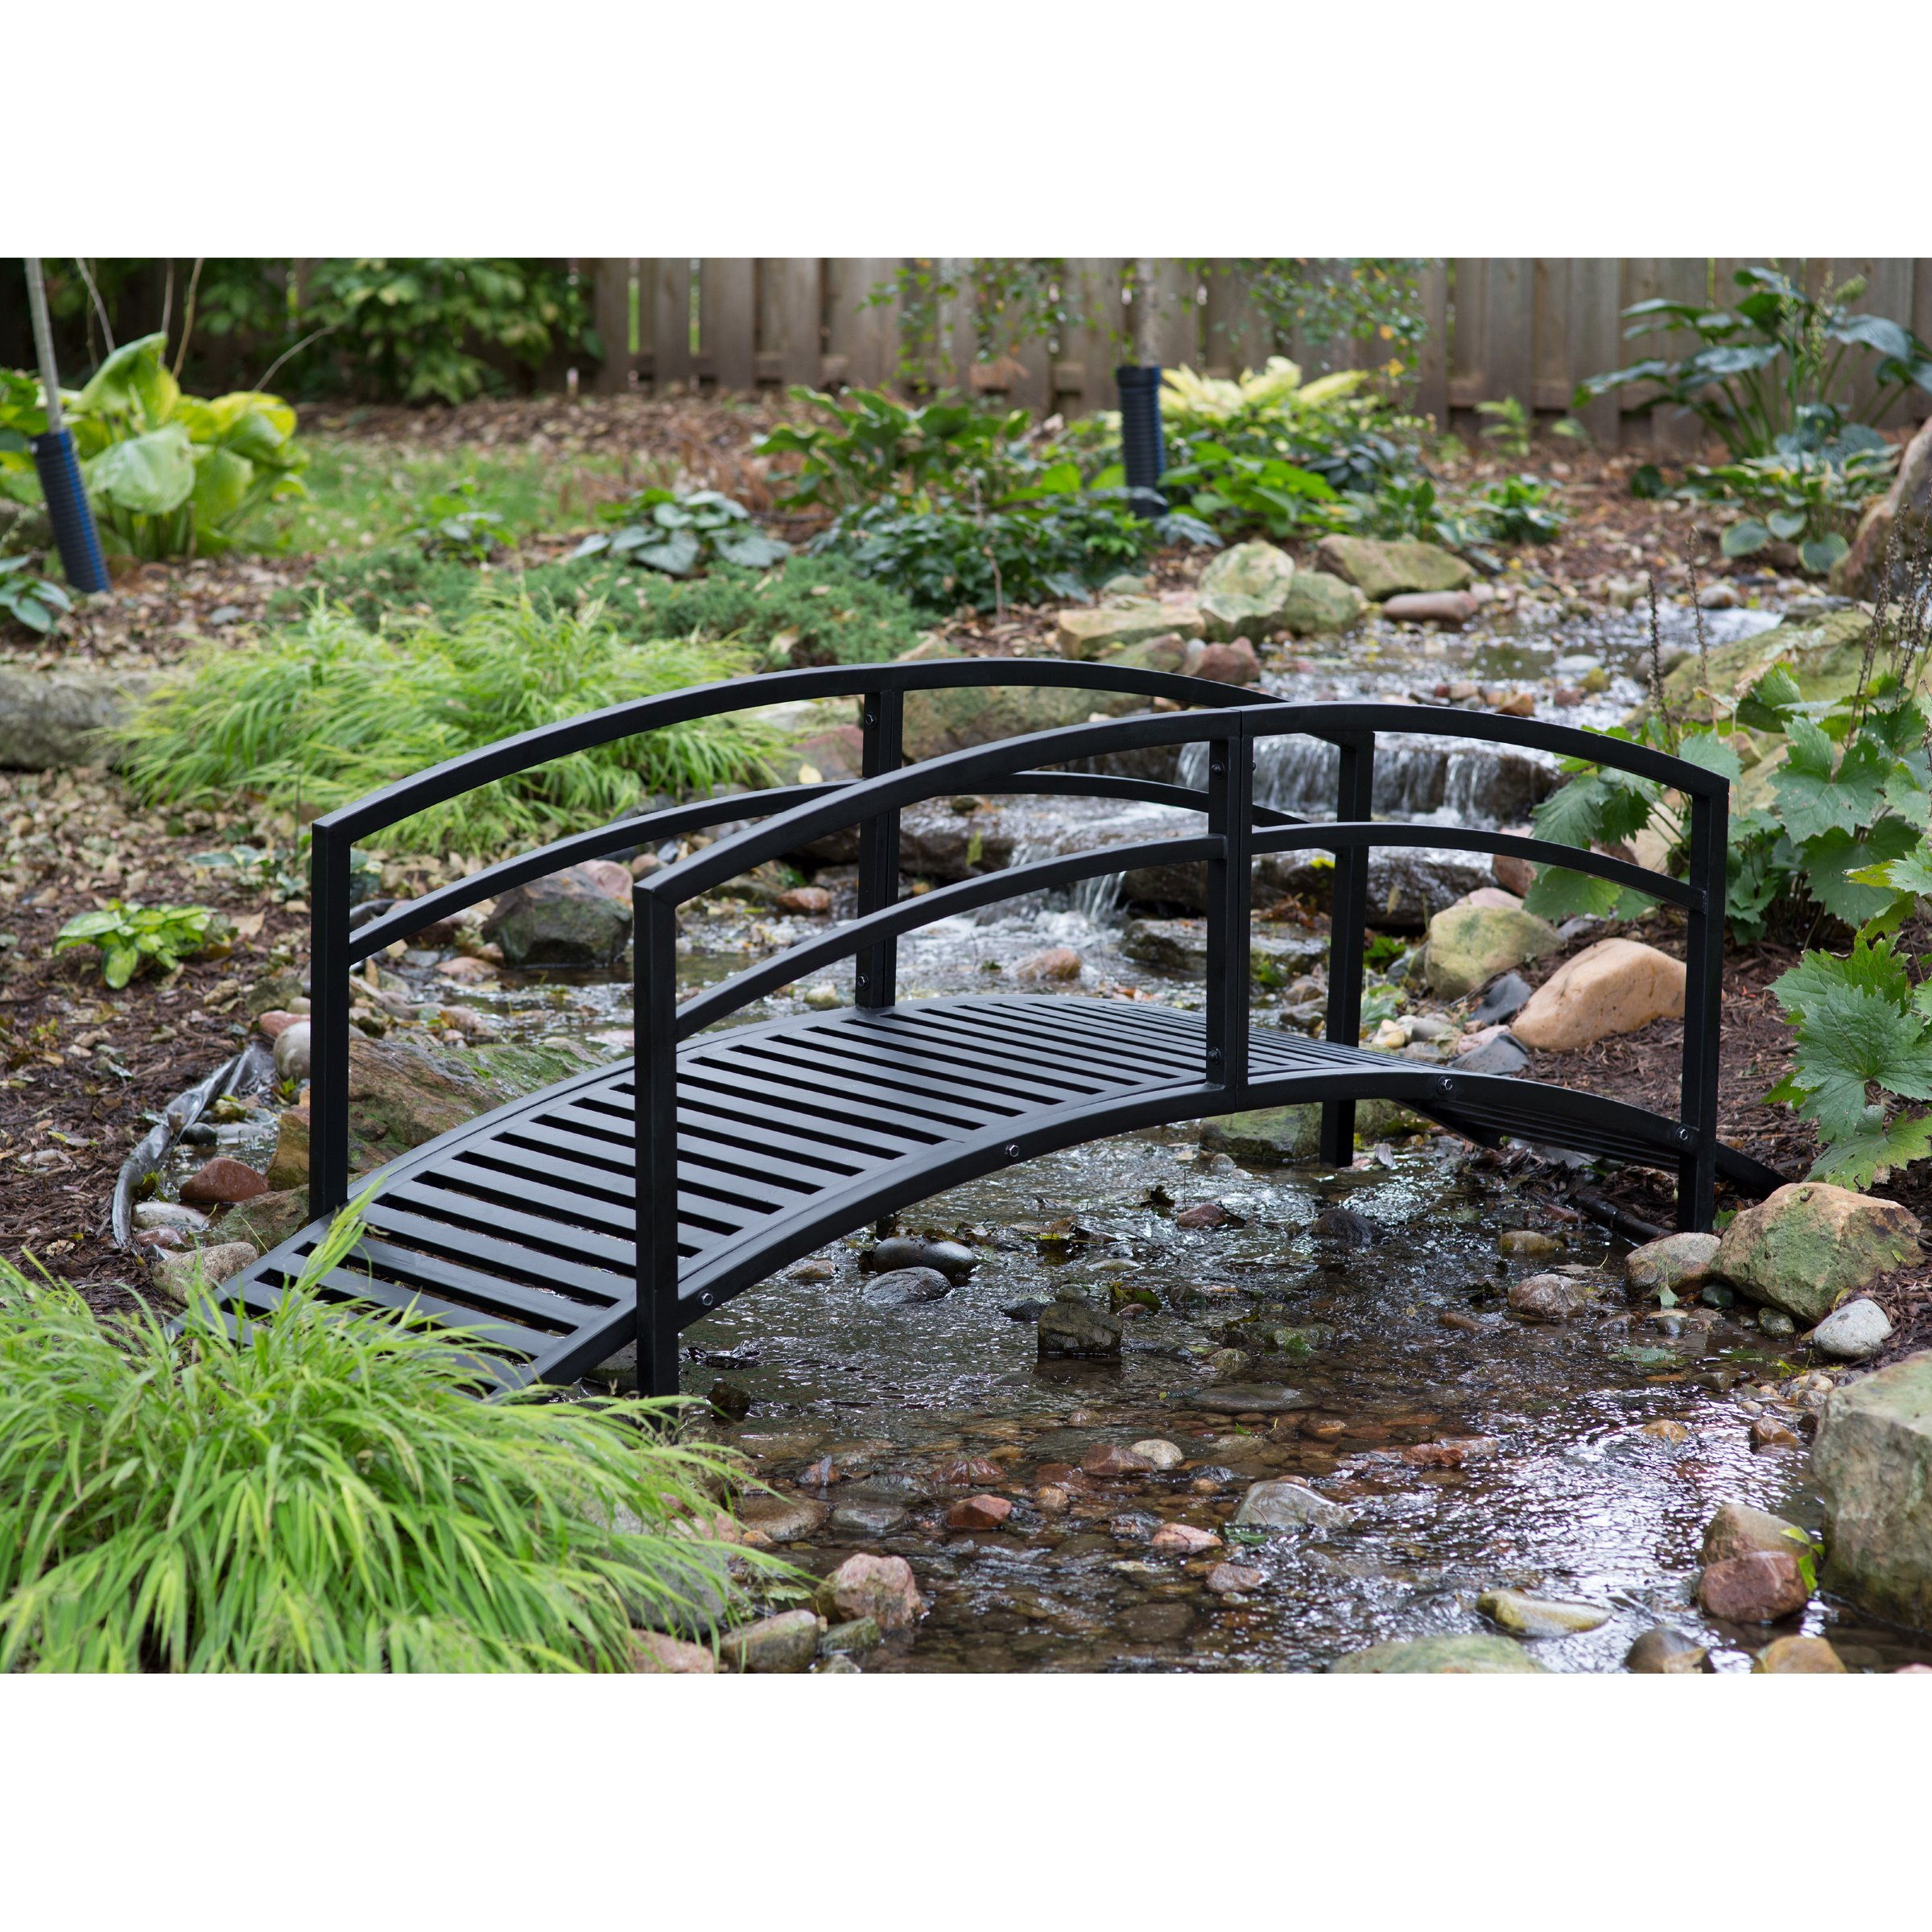 Black Metal Danbury Garden Bridge - 8 ft. Double-Arched Rails and a Classic Slatted Walking Surface (93L x 28W x 29H in.) Assembly is Required by Pelham Living